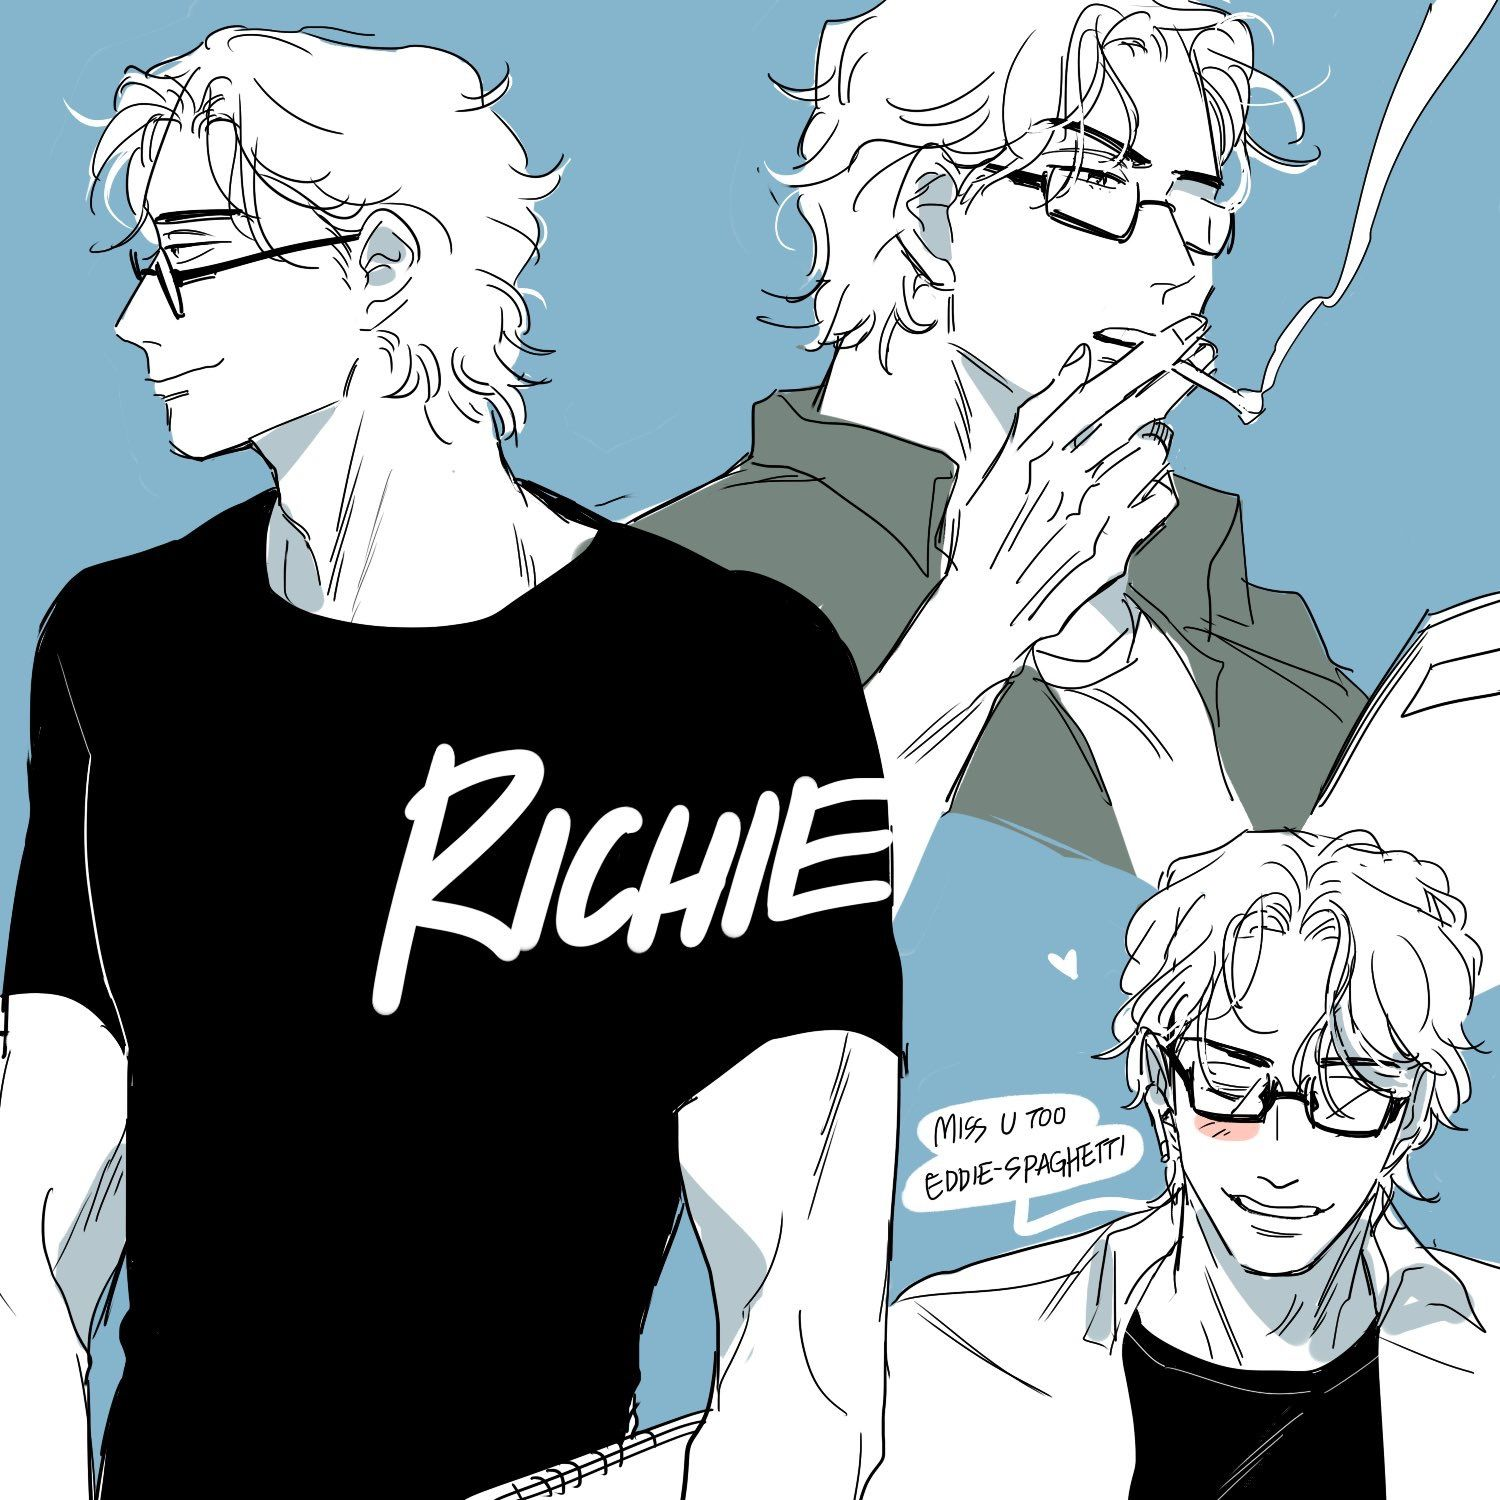 Richie Tozier IT Movie Chapter 2 Cute anime boy, It